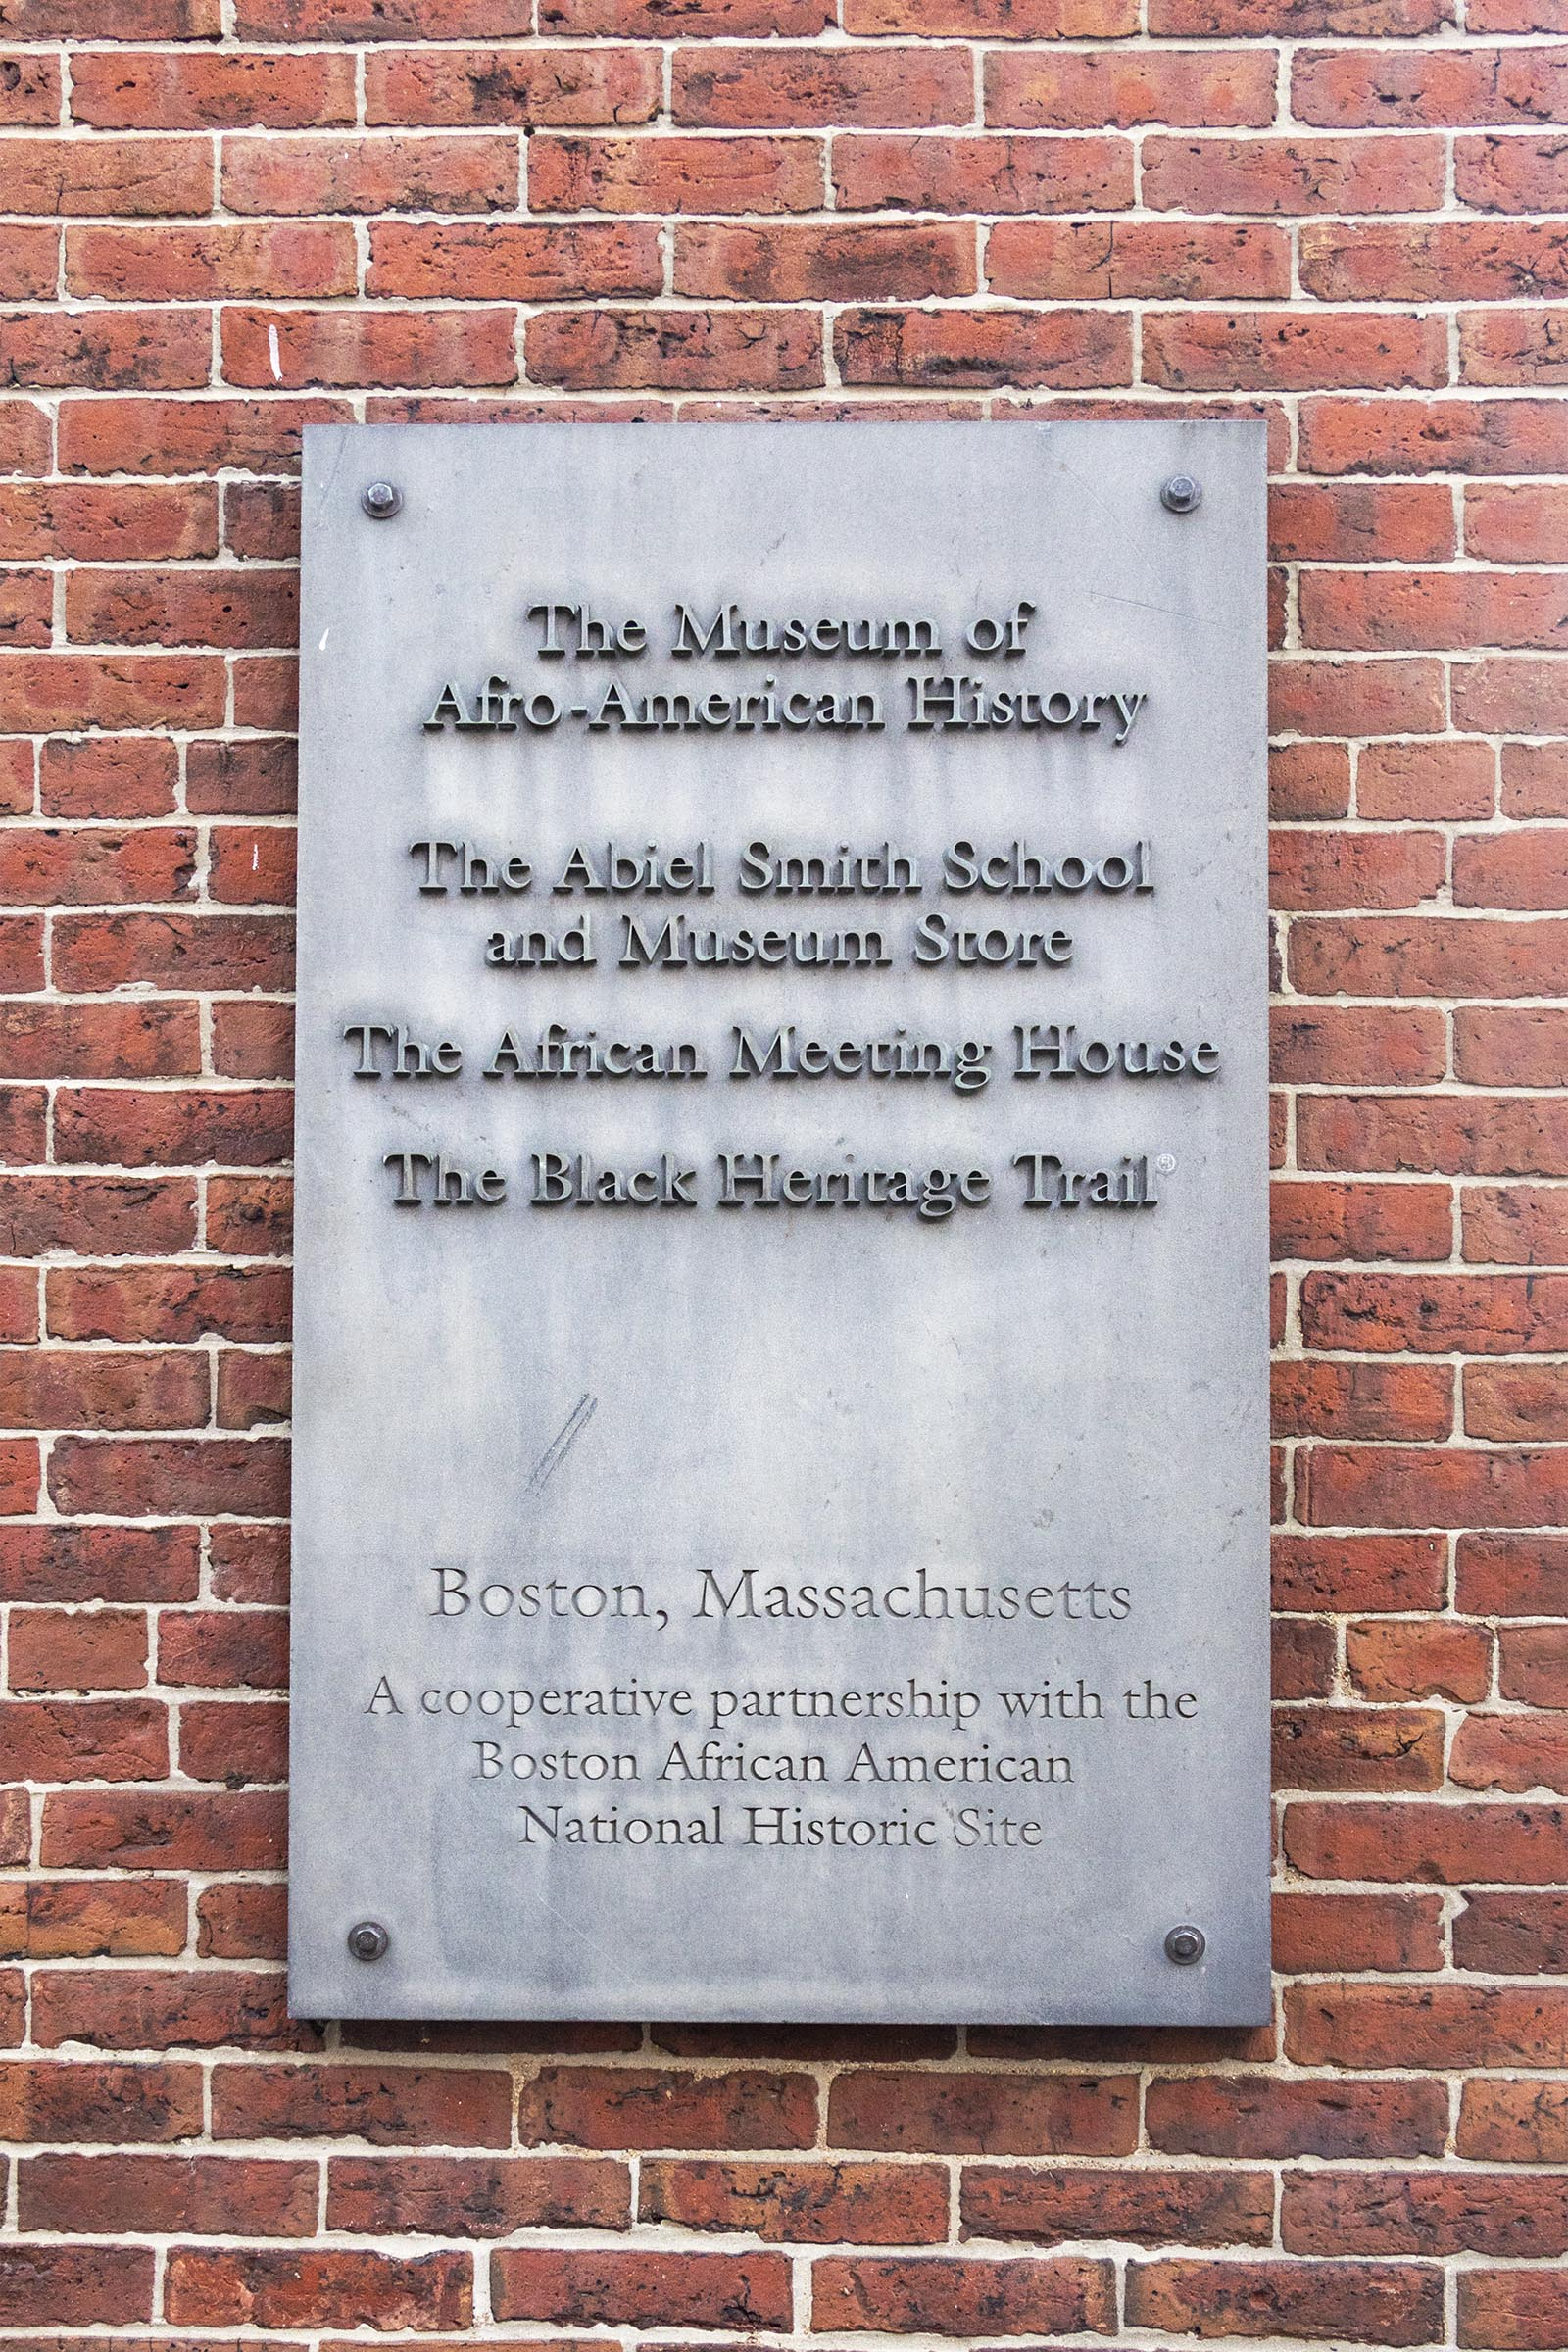 Museum of Afro American History, Abiel Smith School, African Meeting House and Black Heritage Trail, Boston sign